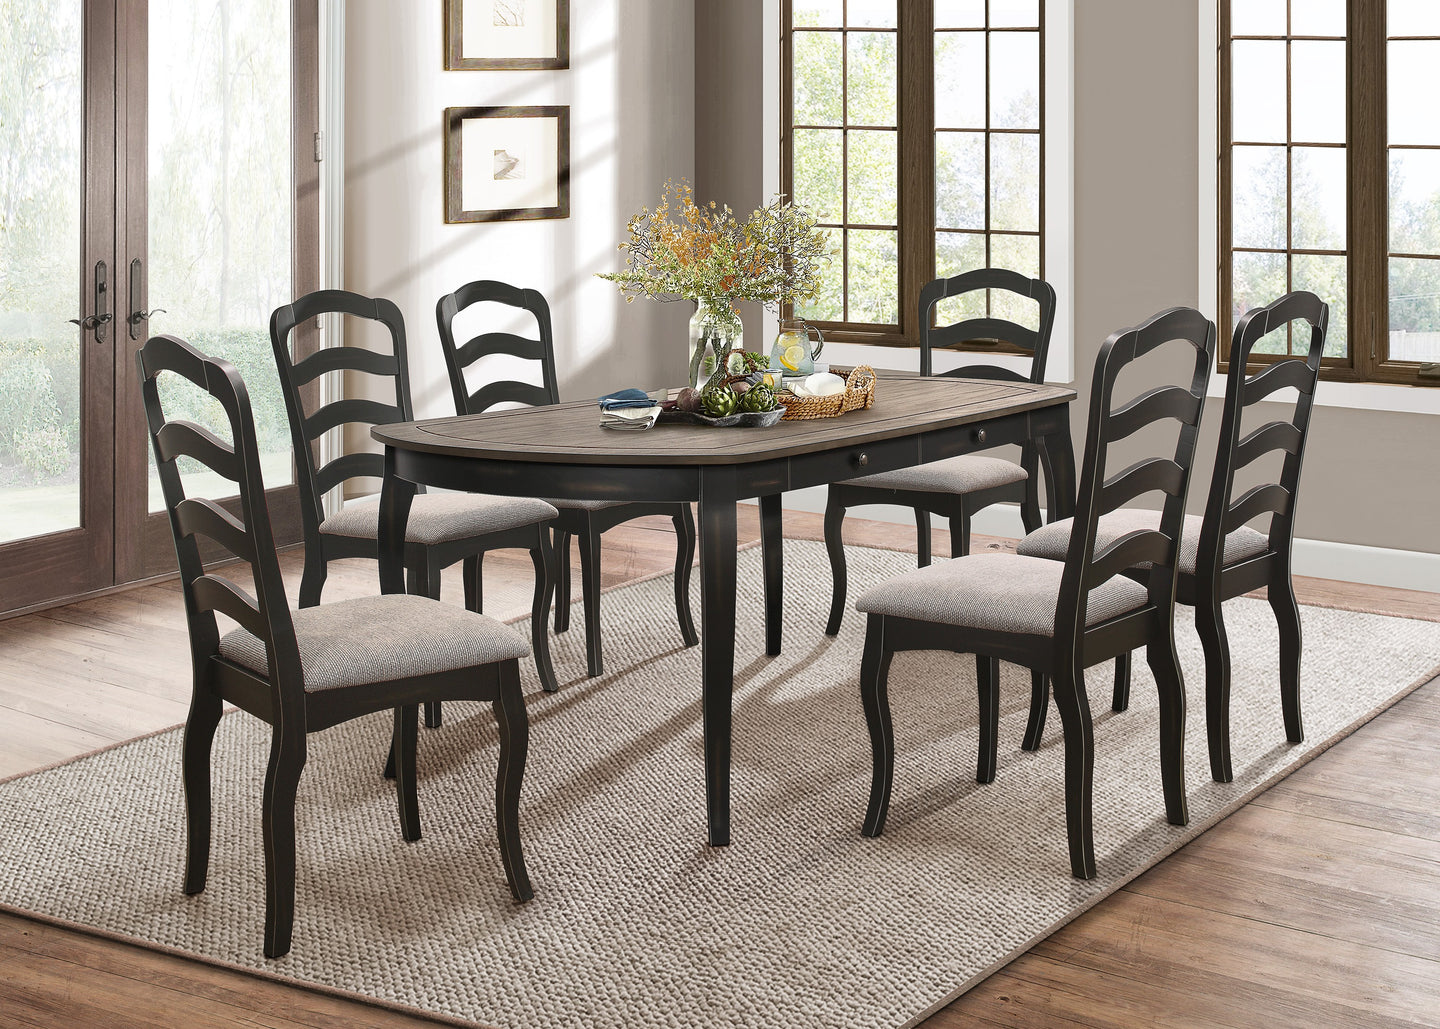 Homelegance Coring Black Wood Finish 7 Piece Dining Table Set